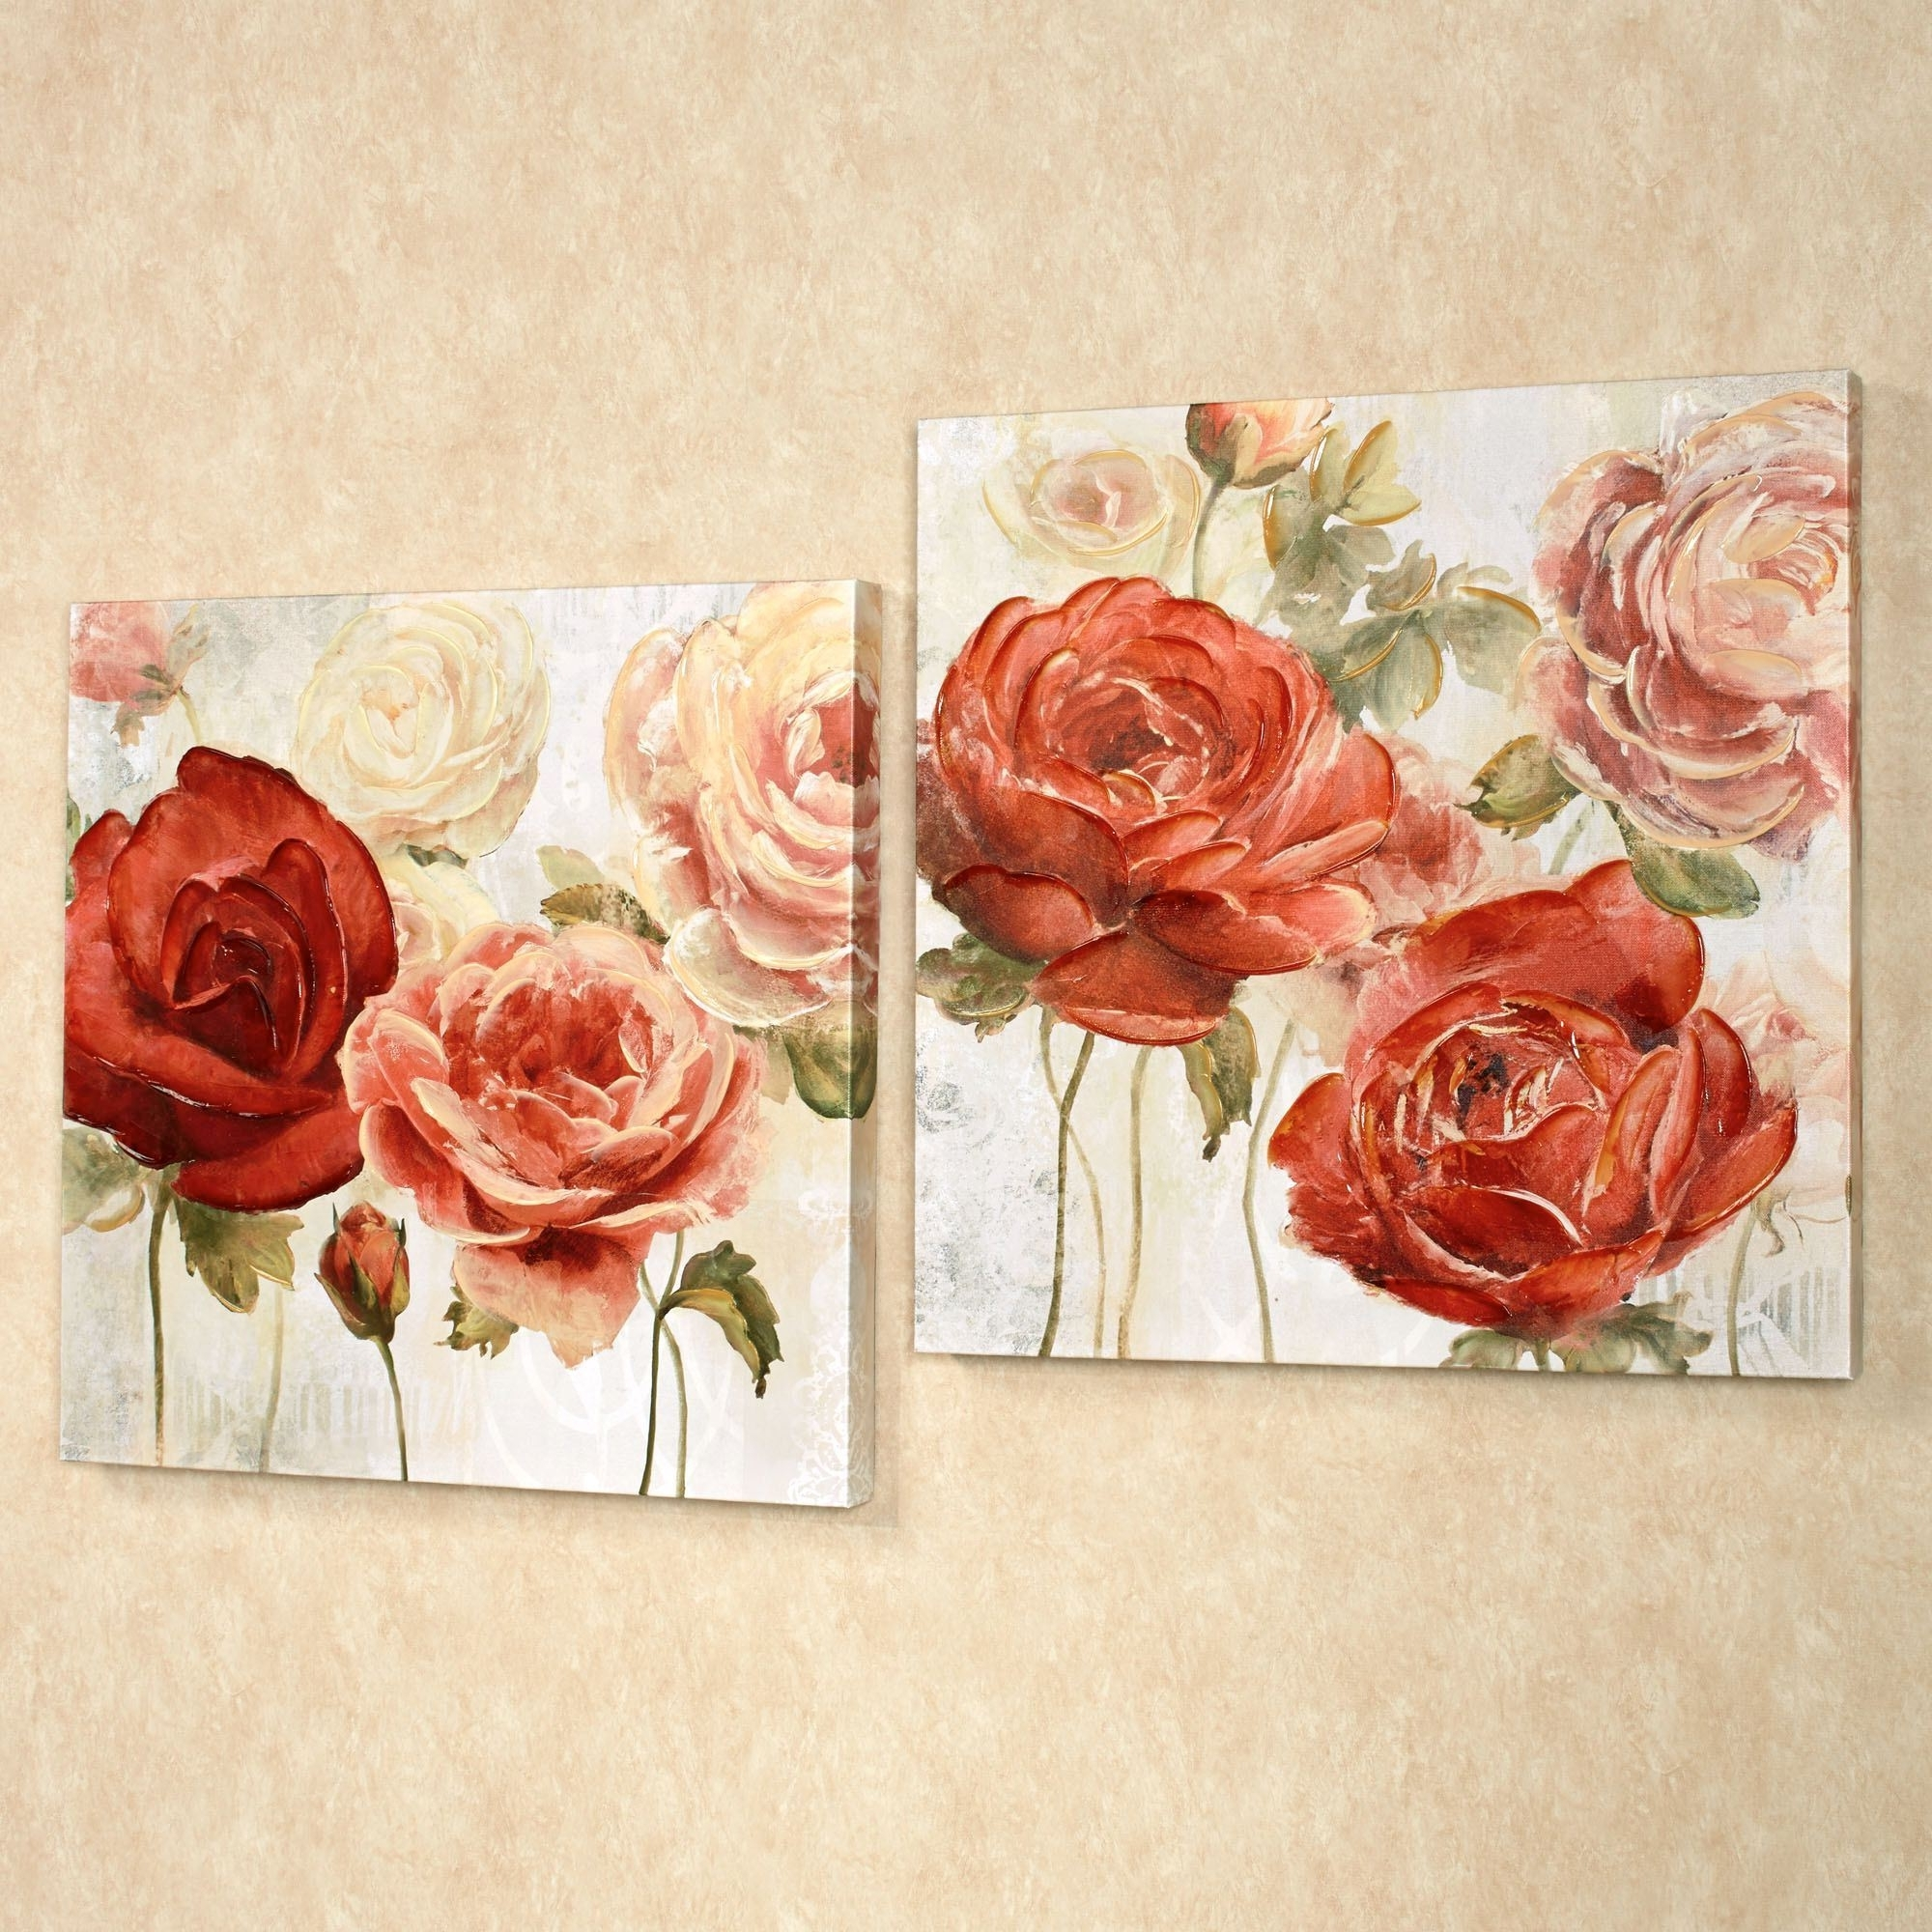 Newest Roses Canvas Wall Art In Radiant Blooms Rose Floral Canvas Wall Art Set (View 8 of 15)